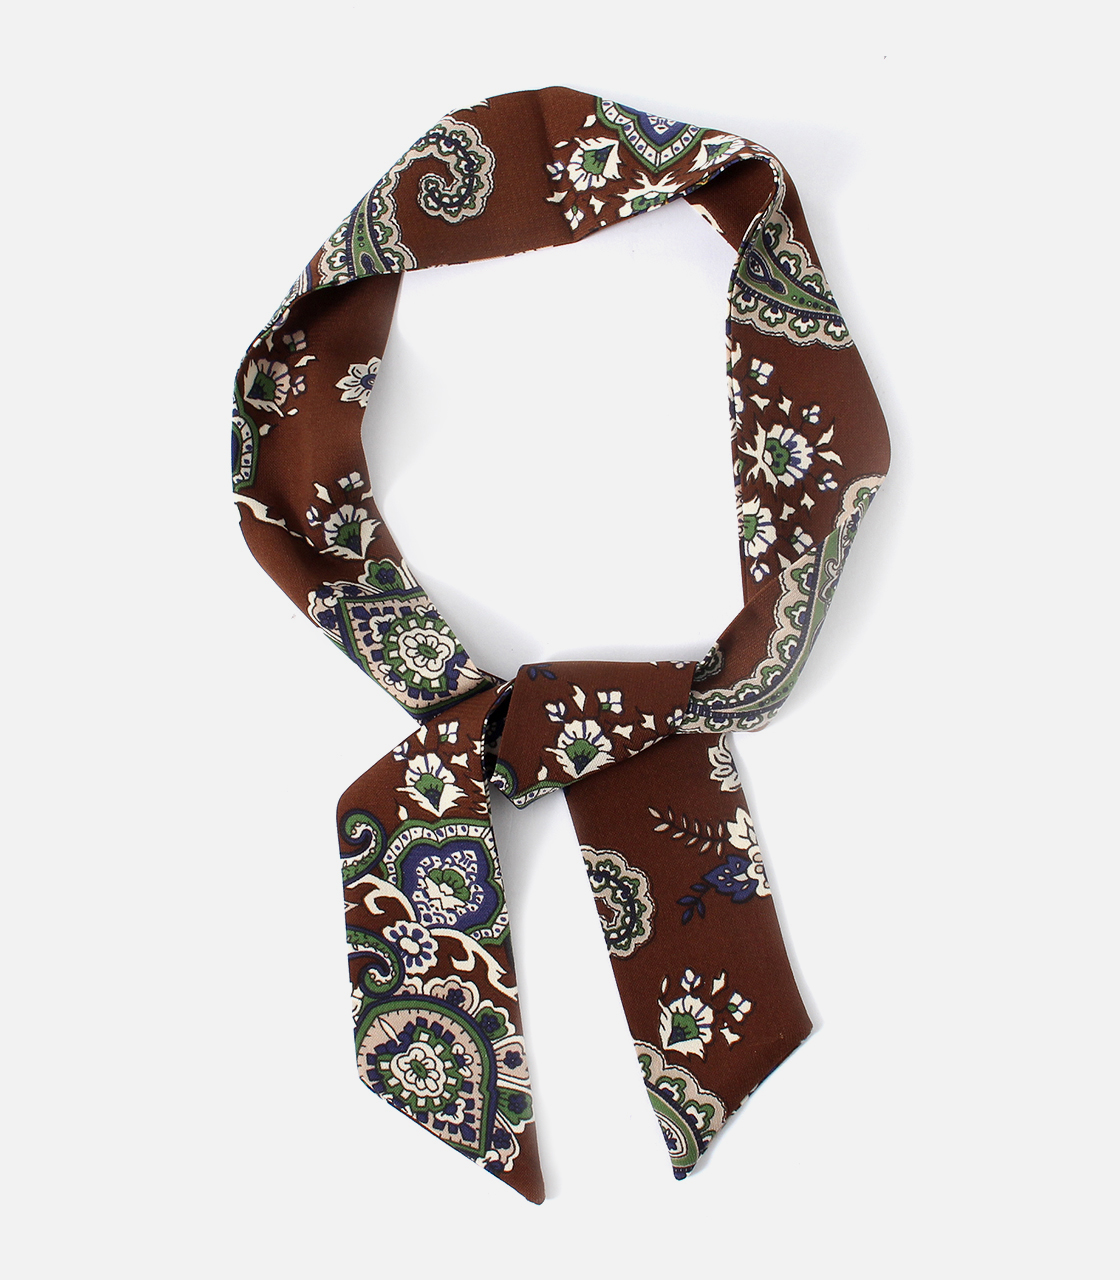 【AZUL BY MOUSSY】PAISLEY SCARF NECKLACE 詳細画像 柄BRN 1